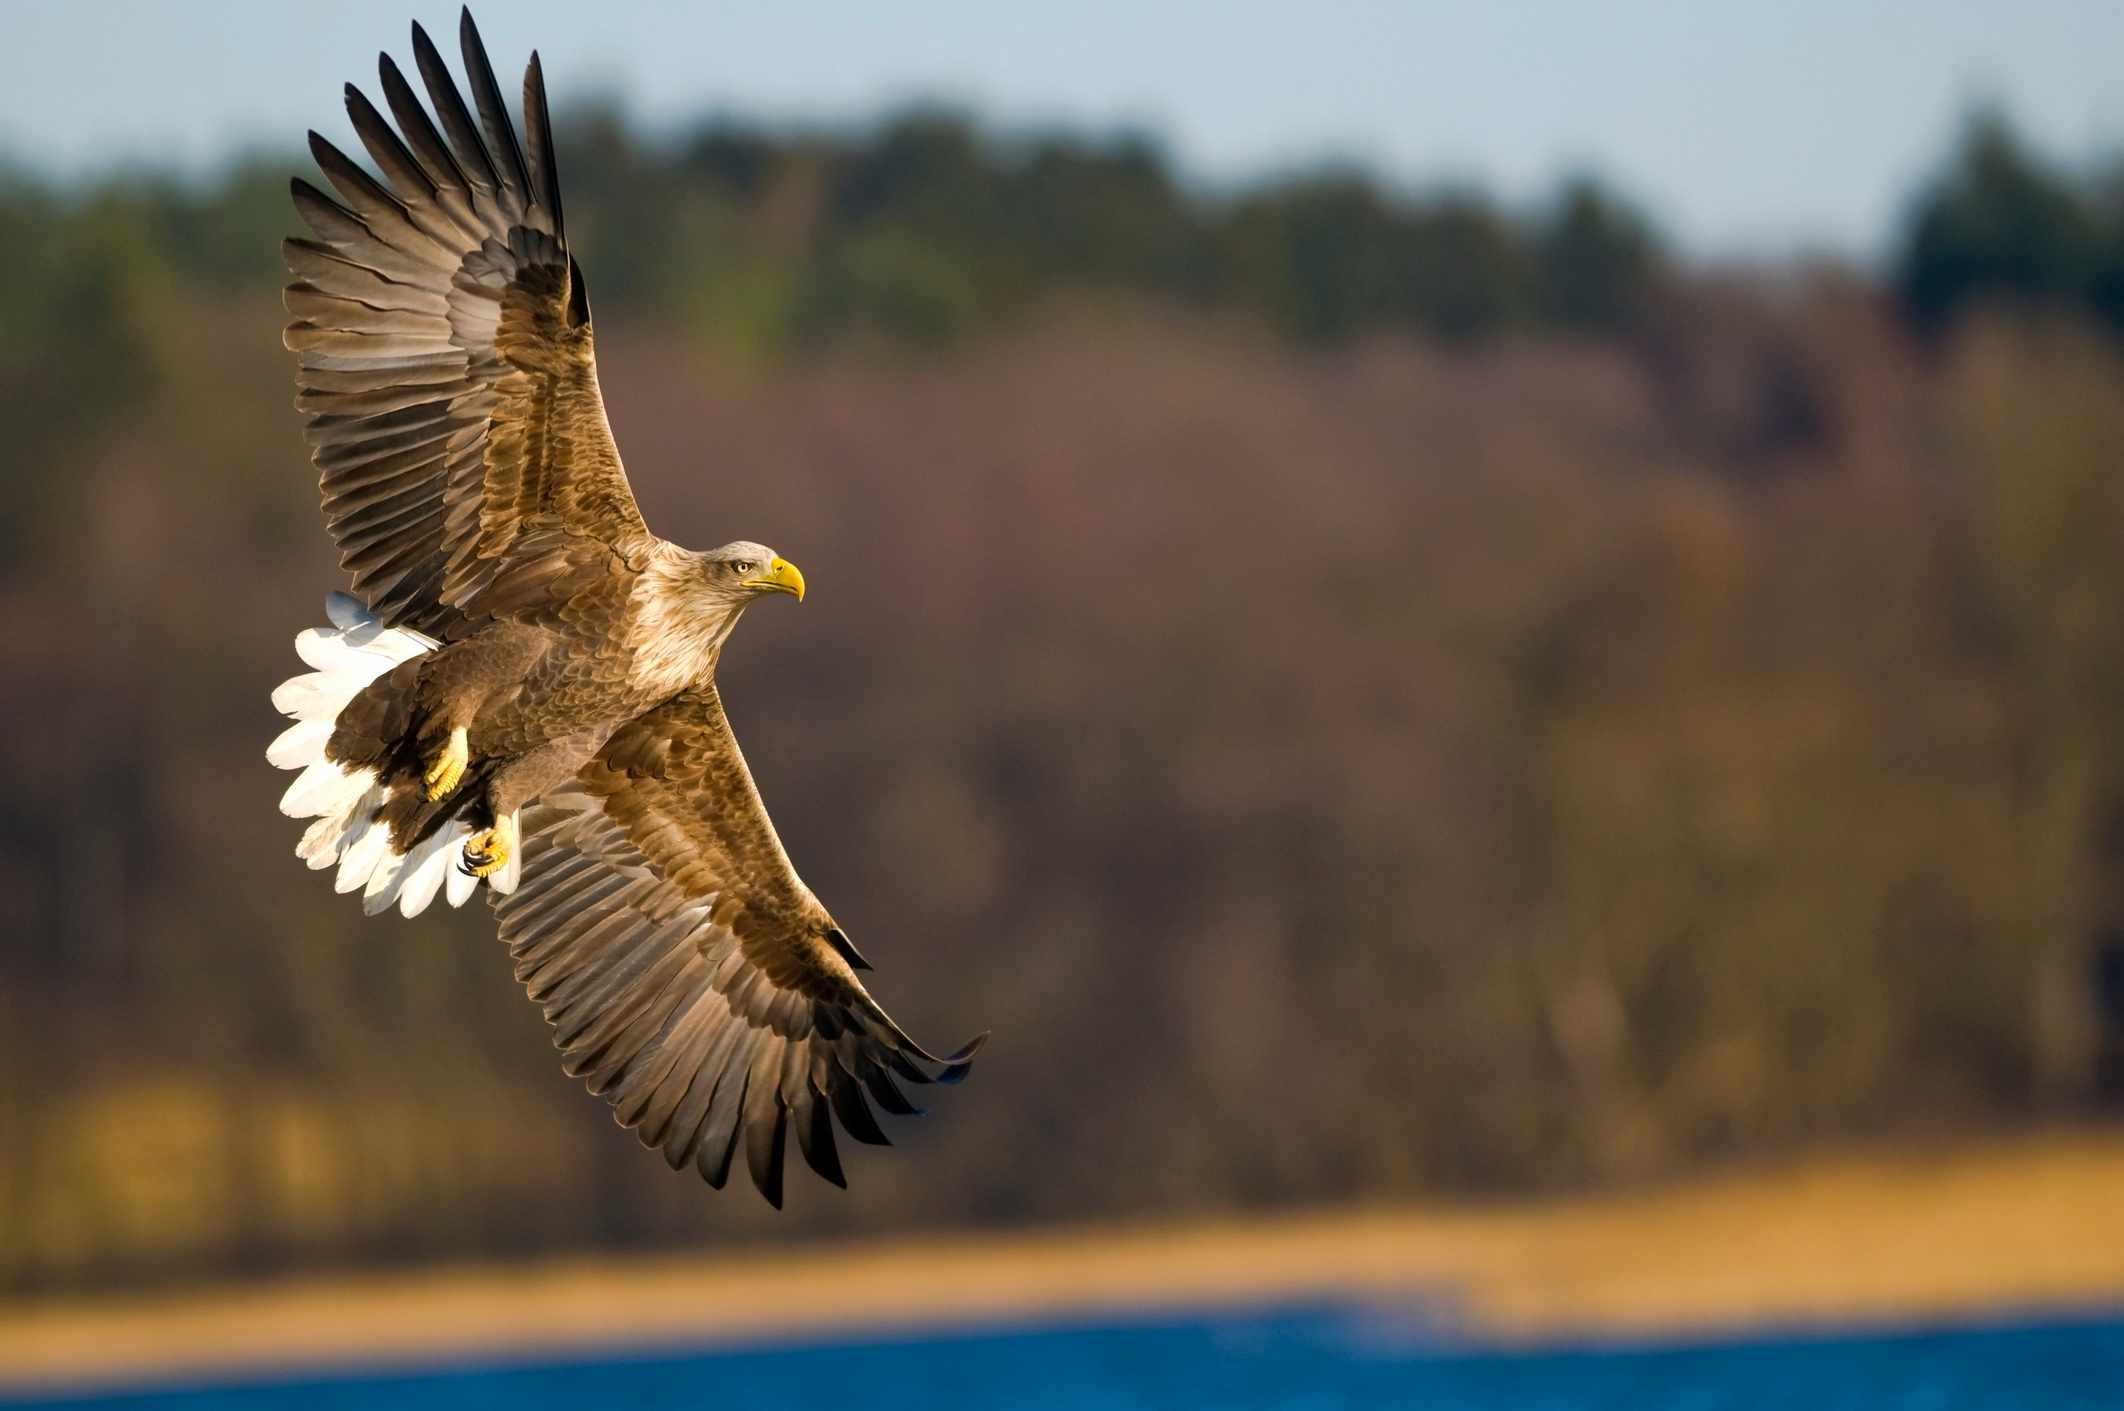 White-tailed eagle flying over lake in Germany. © Berndt Fischer/Getty